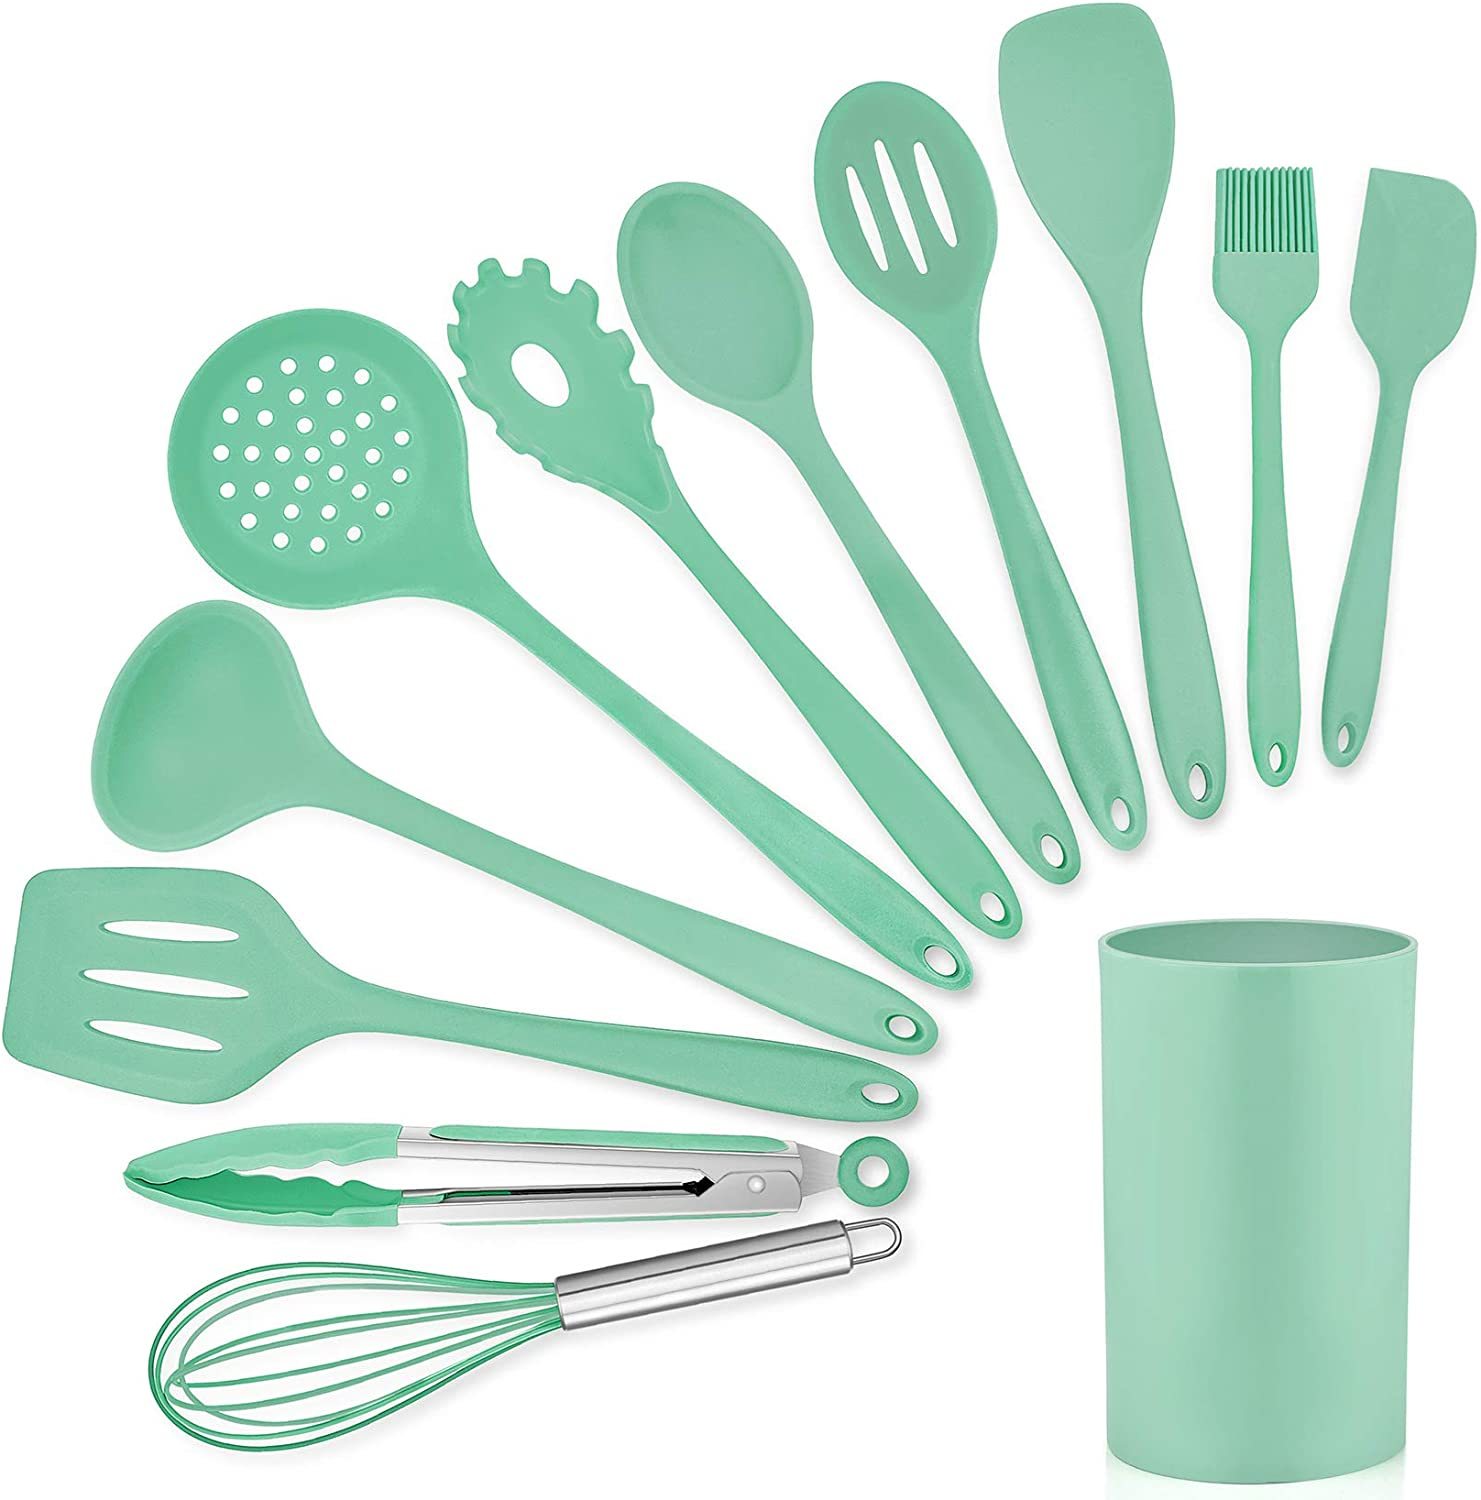 LIANYU 12-Piece Green Silicone Kitchen Cooking Utensils with Holder, Kitchen Tools Set Include Slotted Spatula Spoon Turner Ladle Tong Whisk, Dishwasher Safe